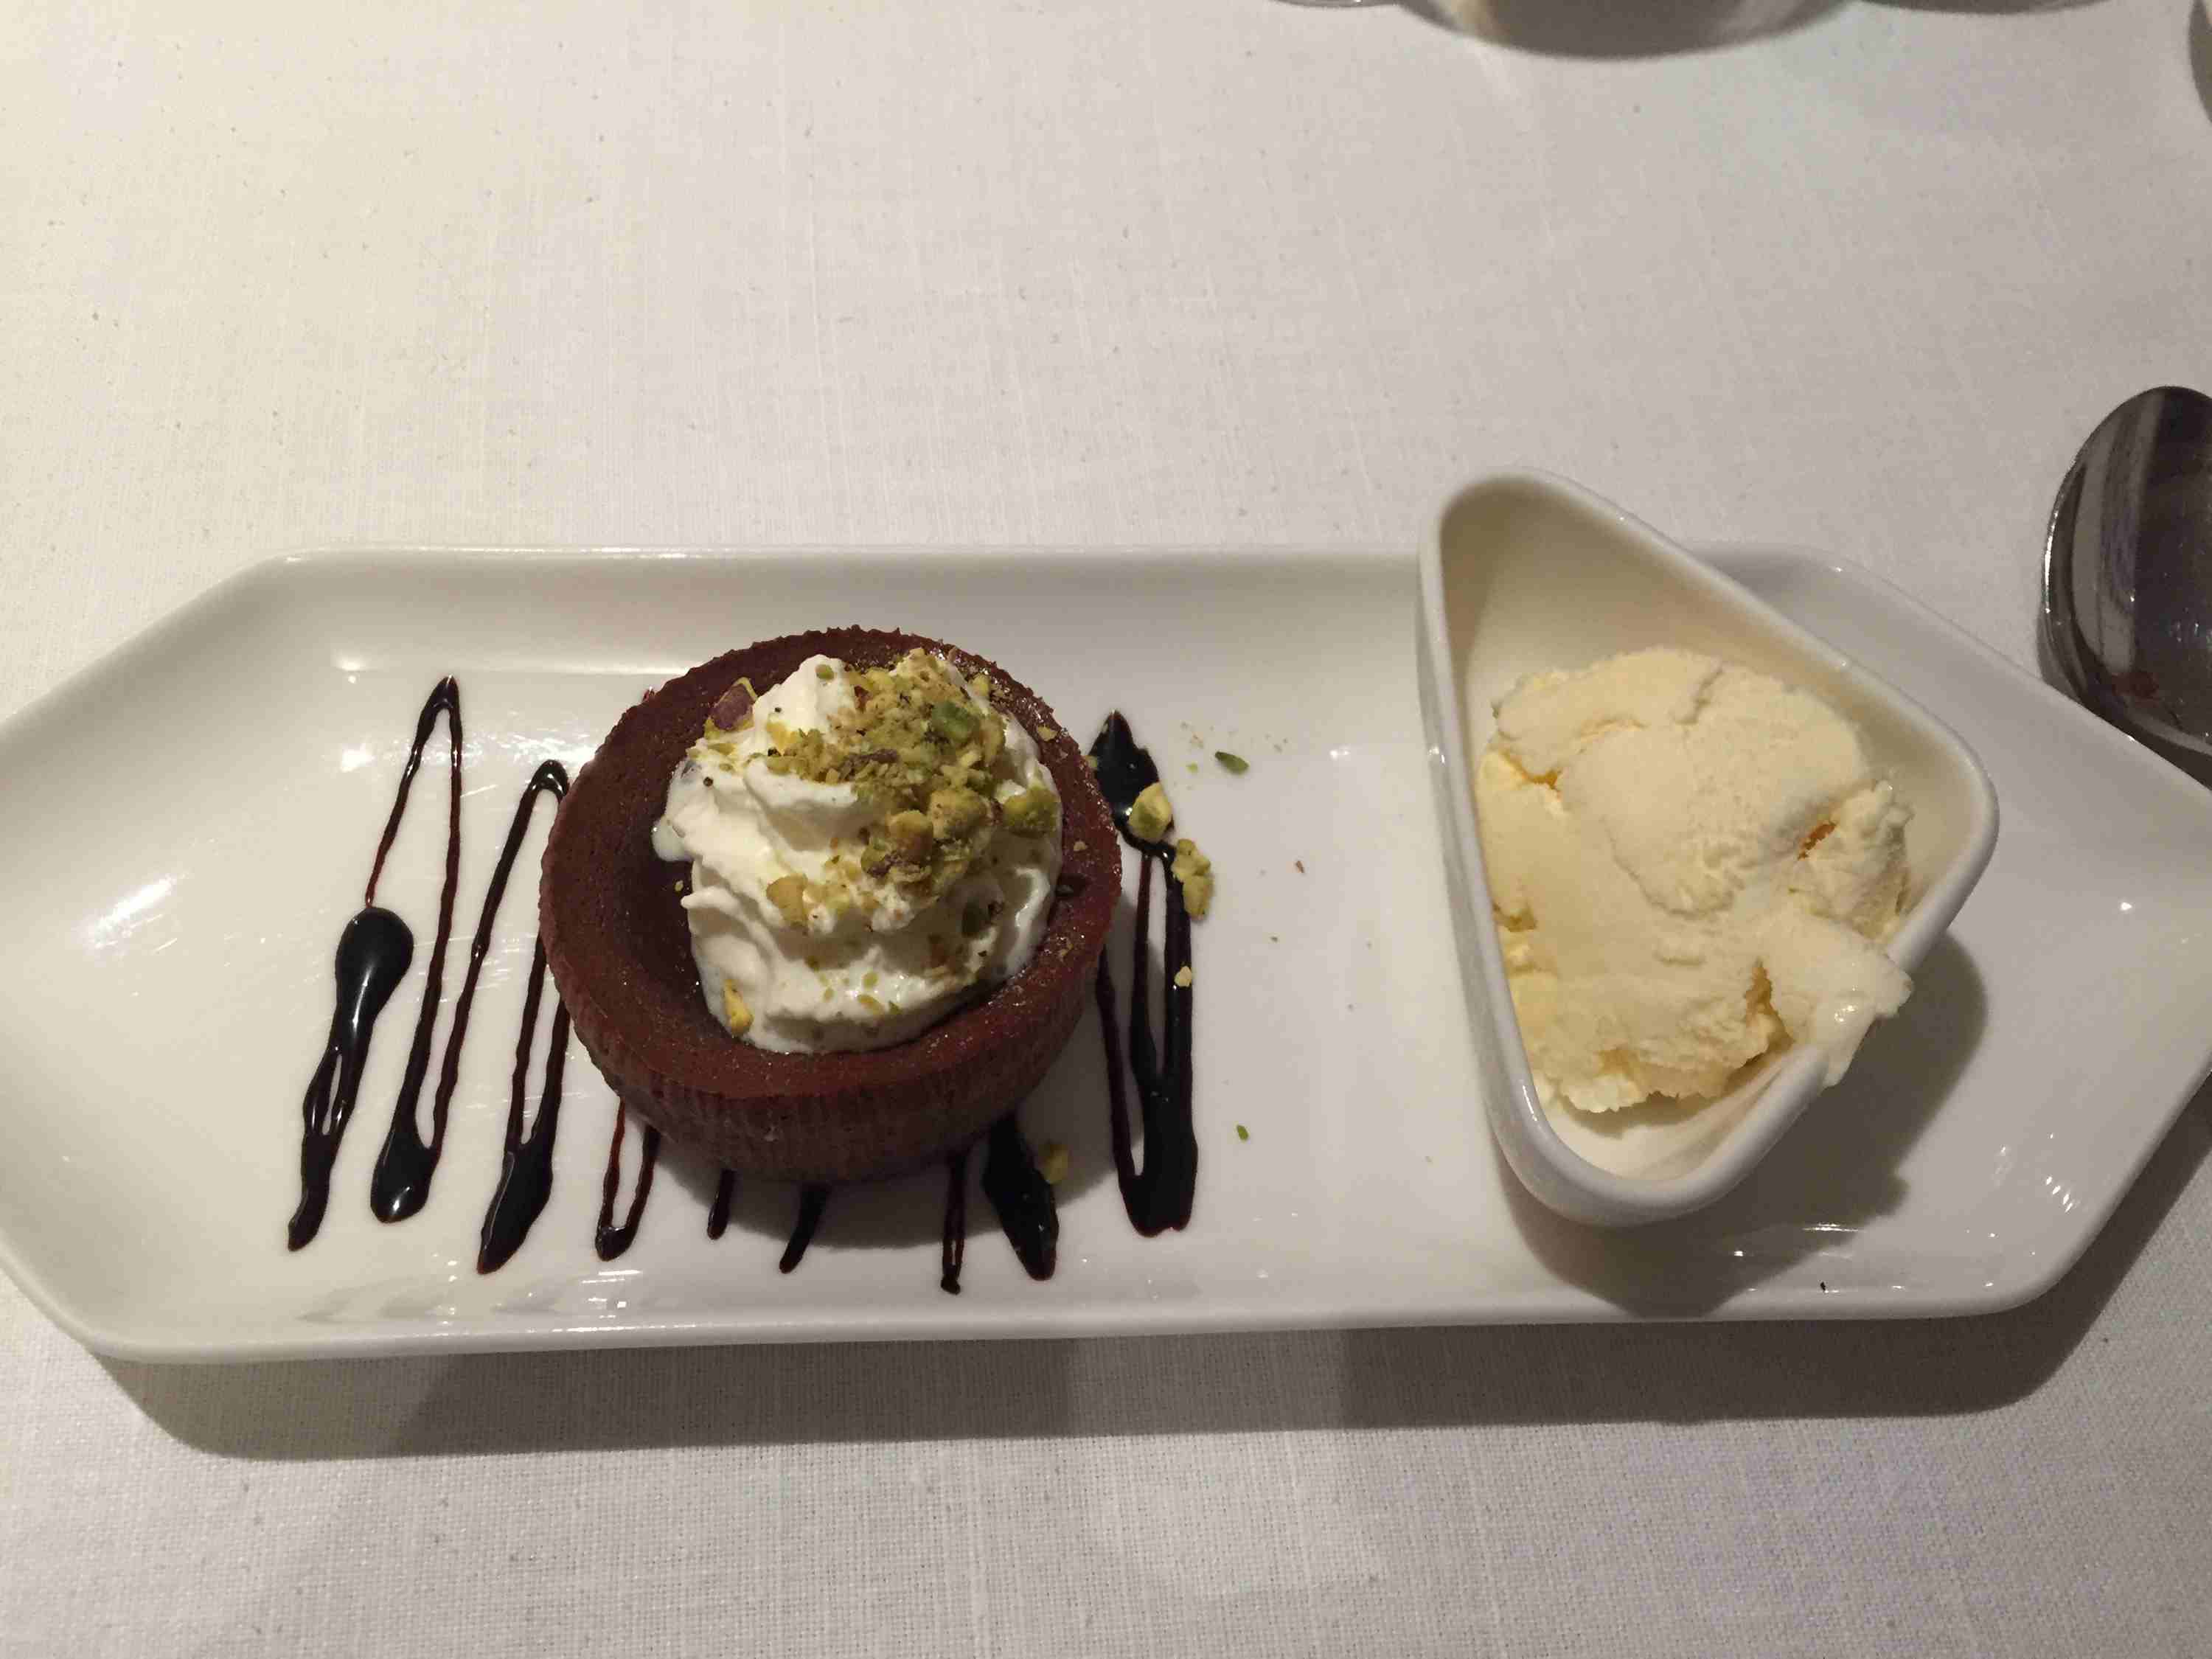 Chocolate souffle with vanilla ice cream on the Viking Astrild river cruise ship